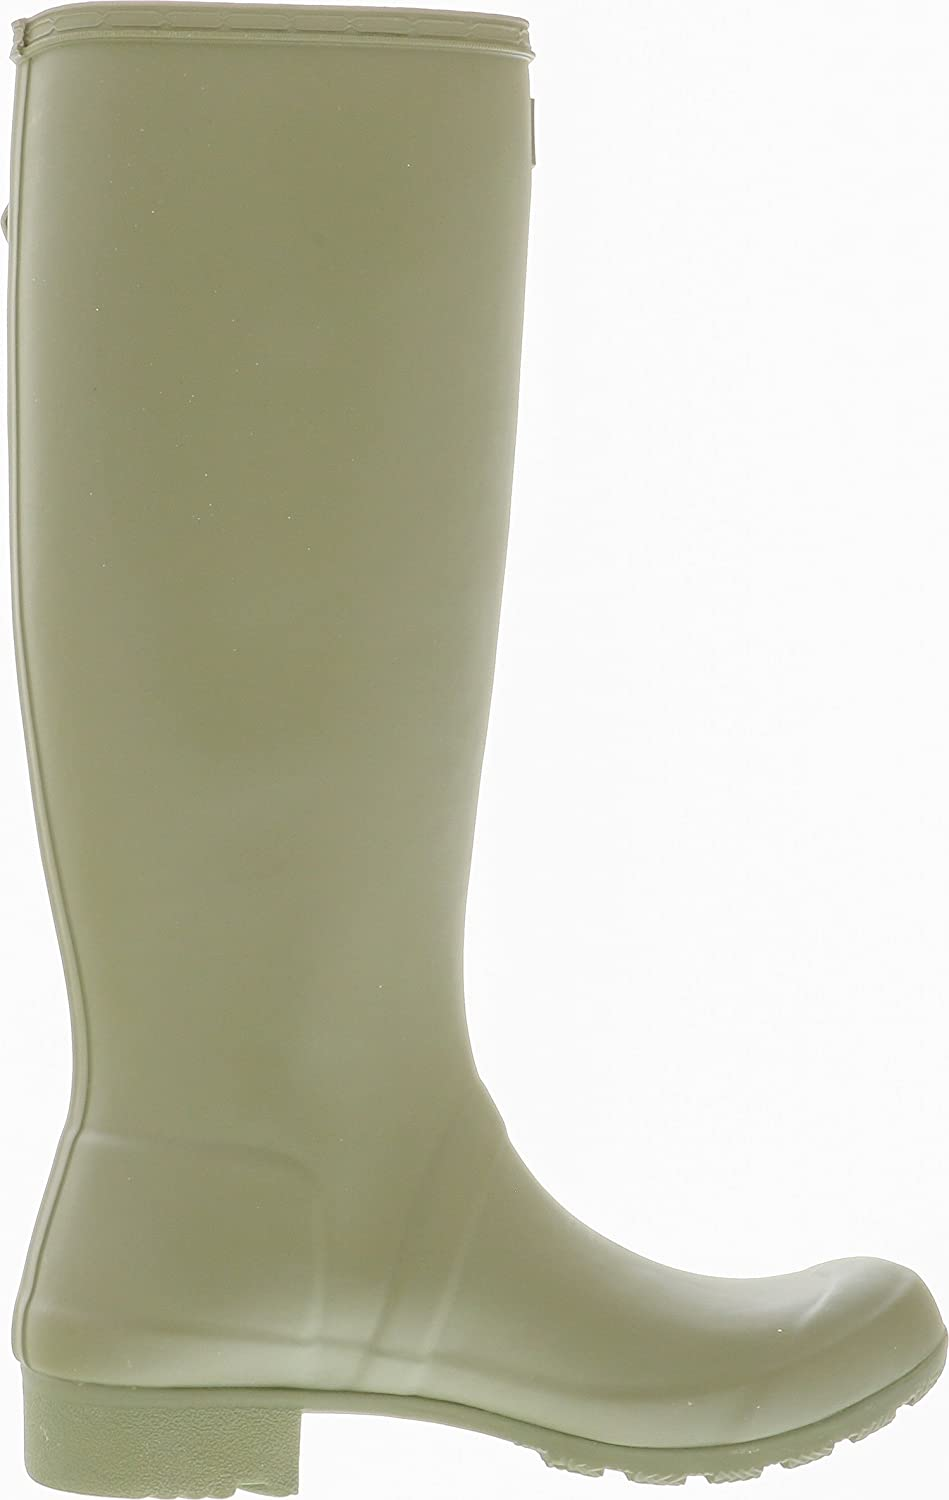 Hunter Original Tour Women Round Toe Synthetic Black B(M) Rain Boot B00TGSBVMS 7 B(M) Black US|Olive 6720e0